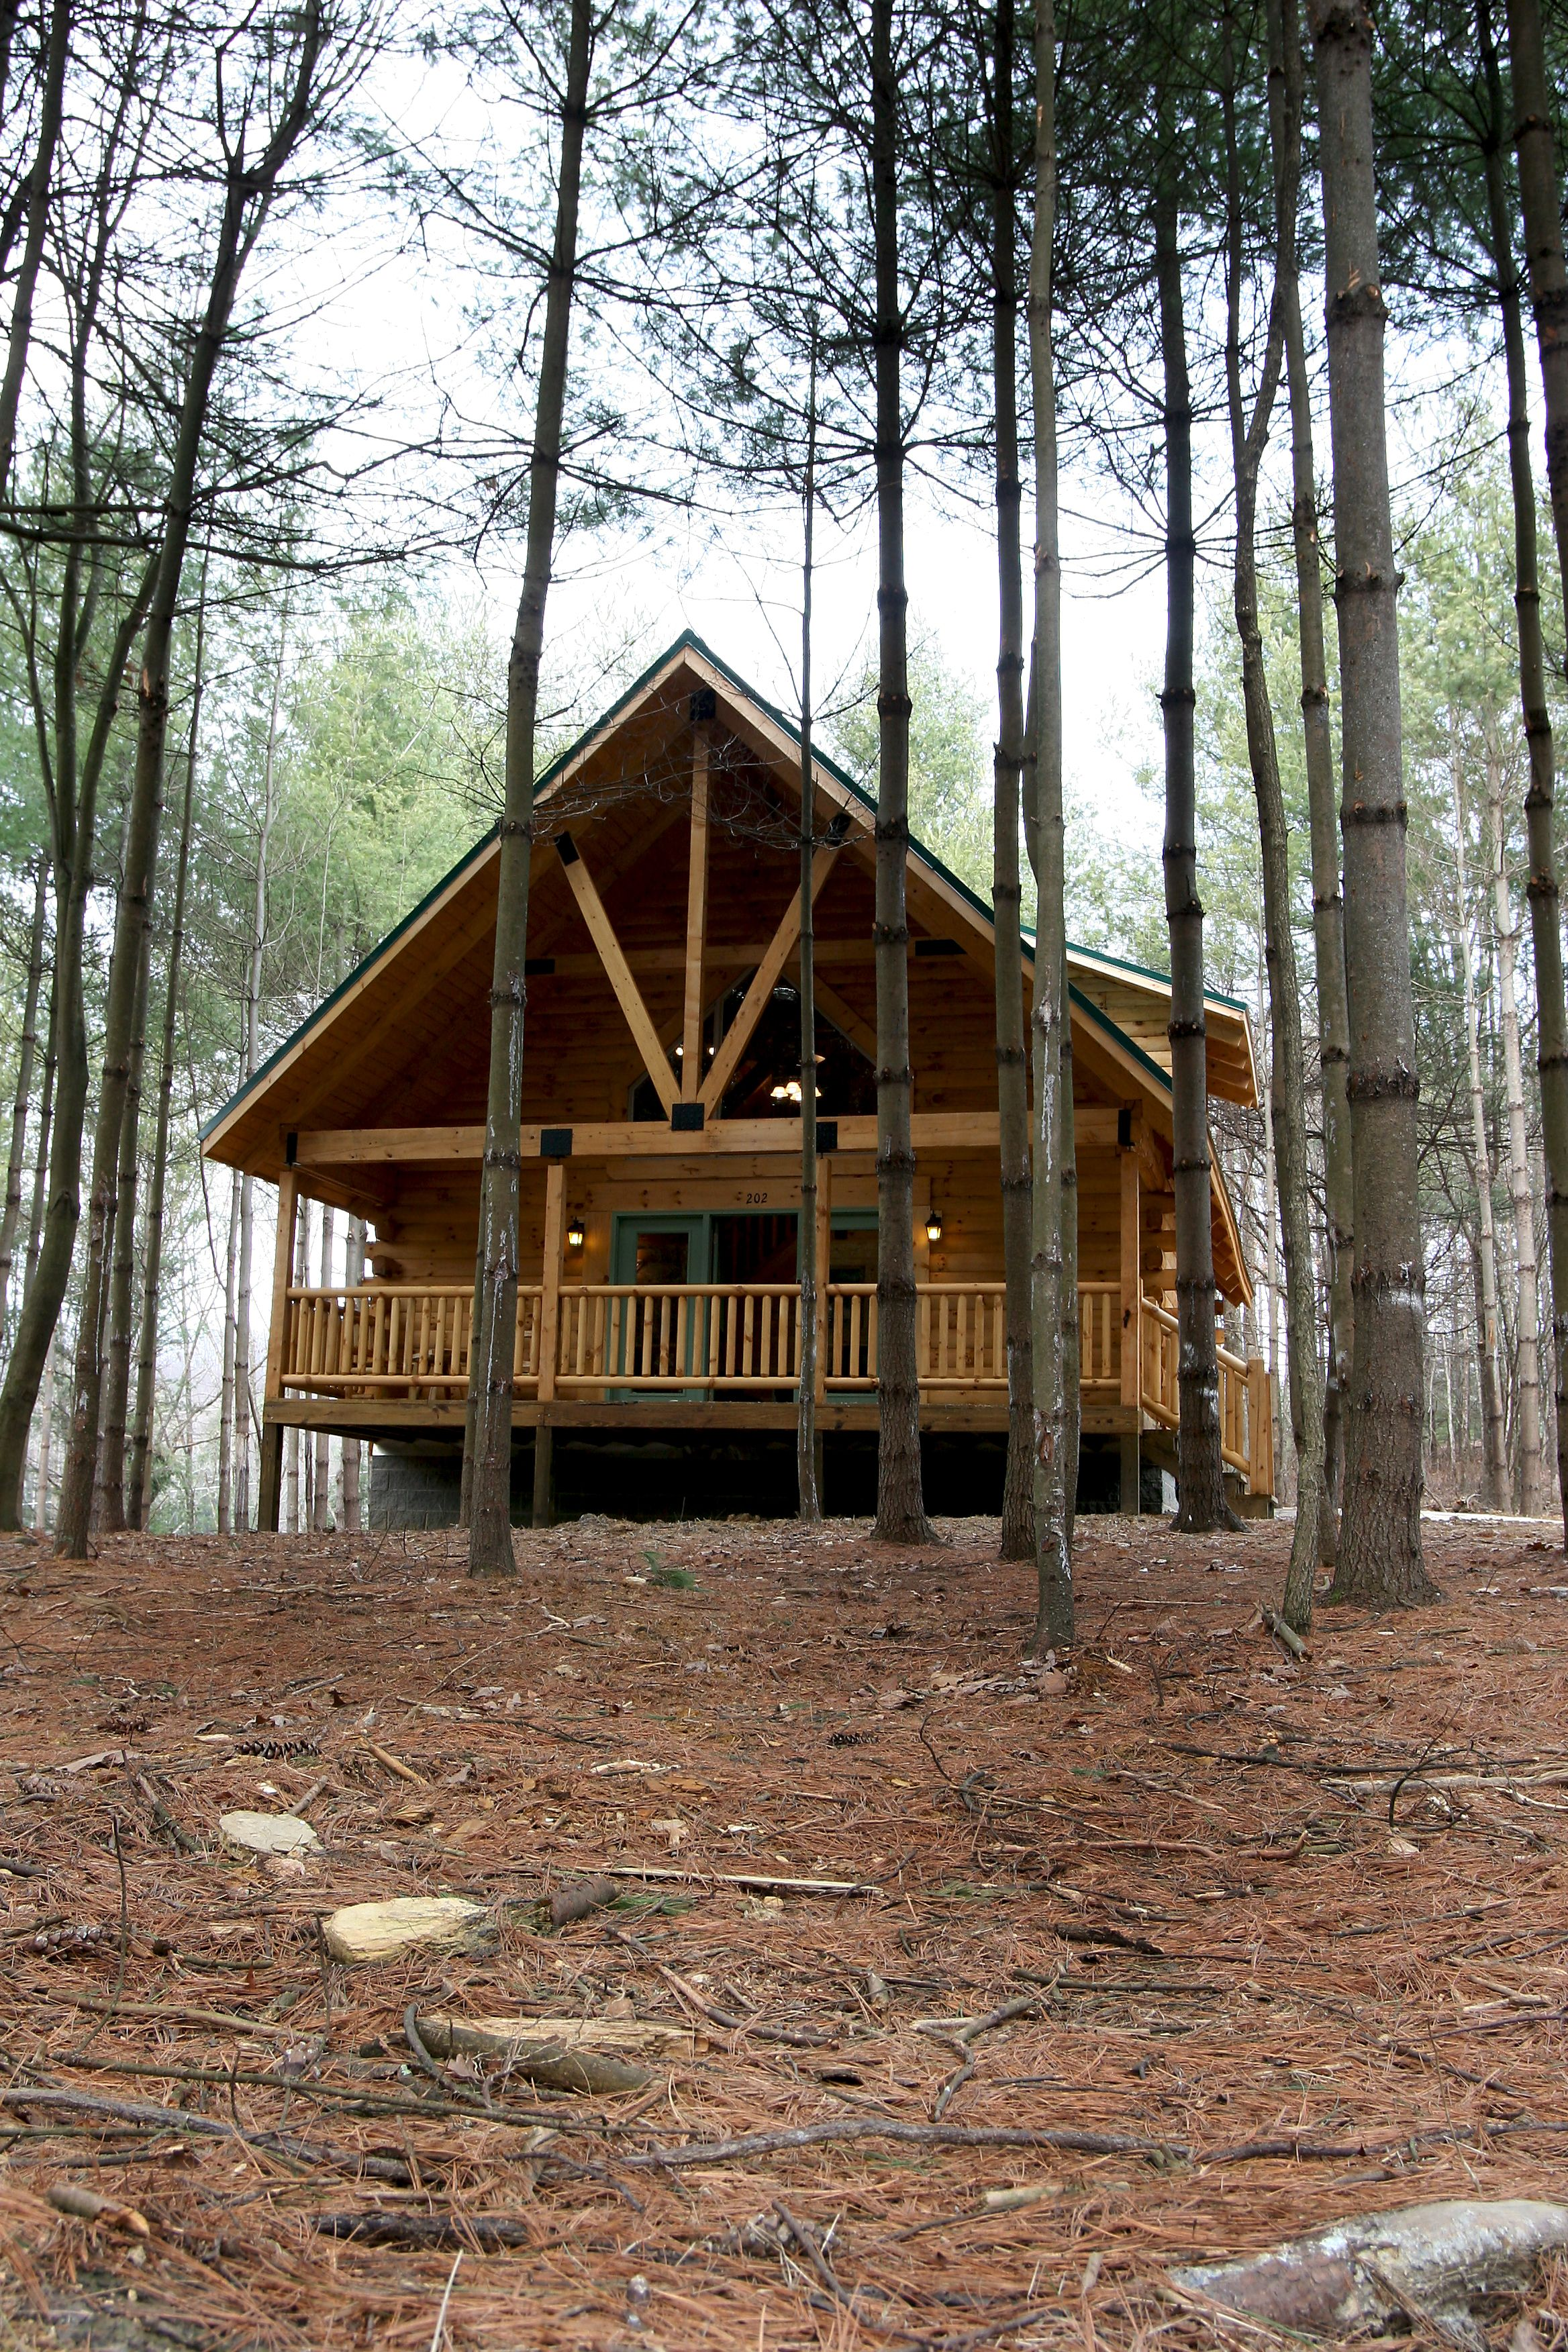 rentals cabins wildrockwv com cabin wv wildrocktreehouse vrbo